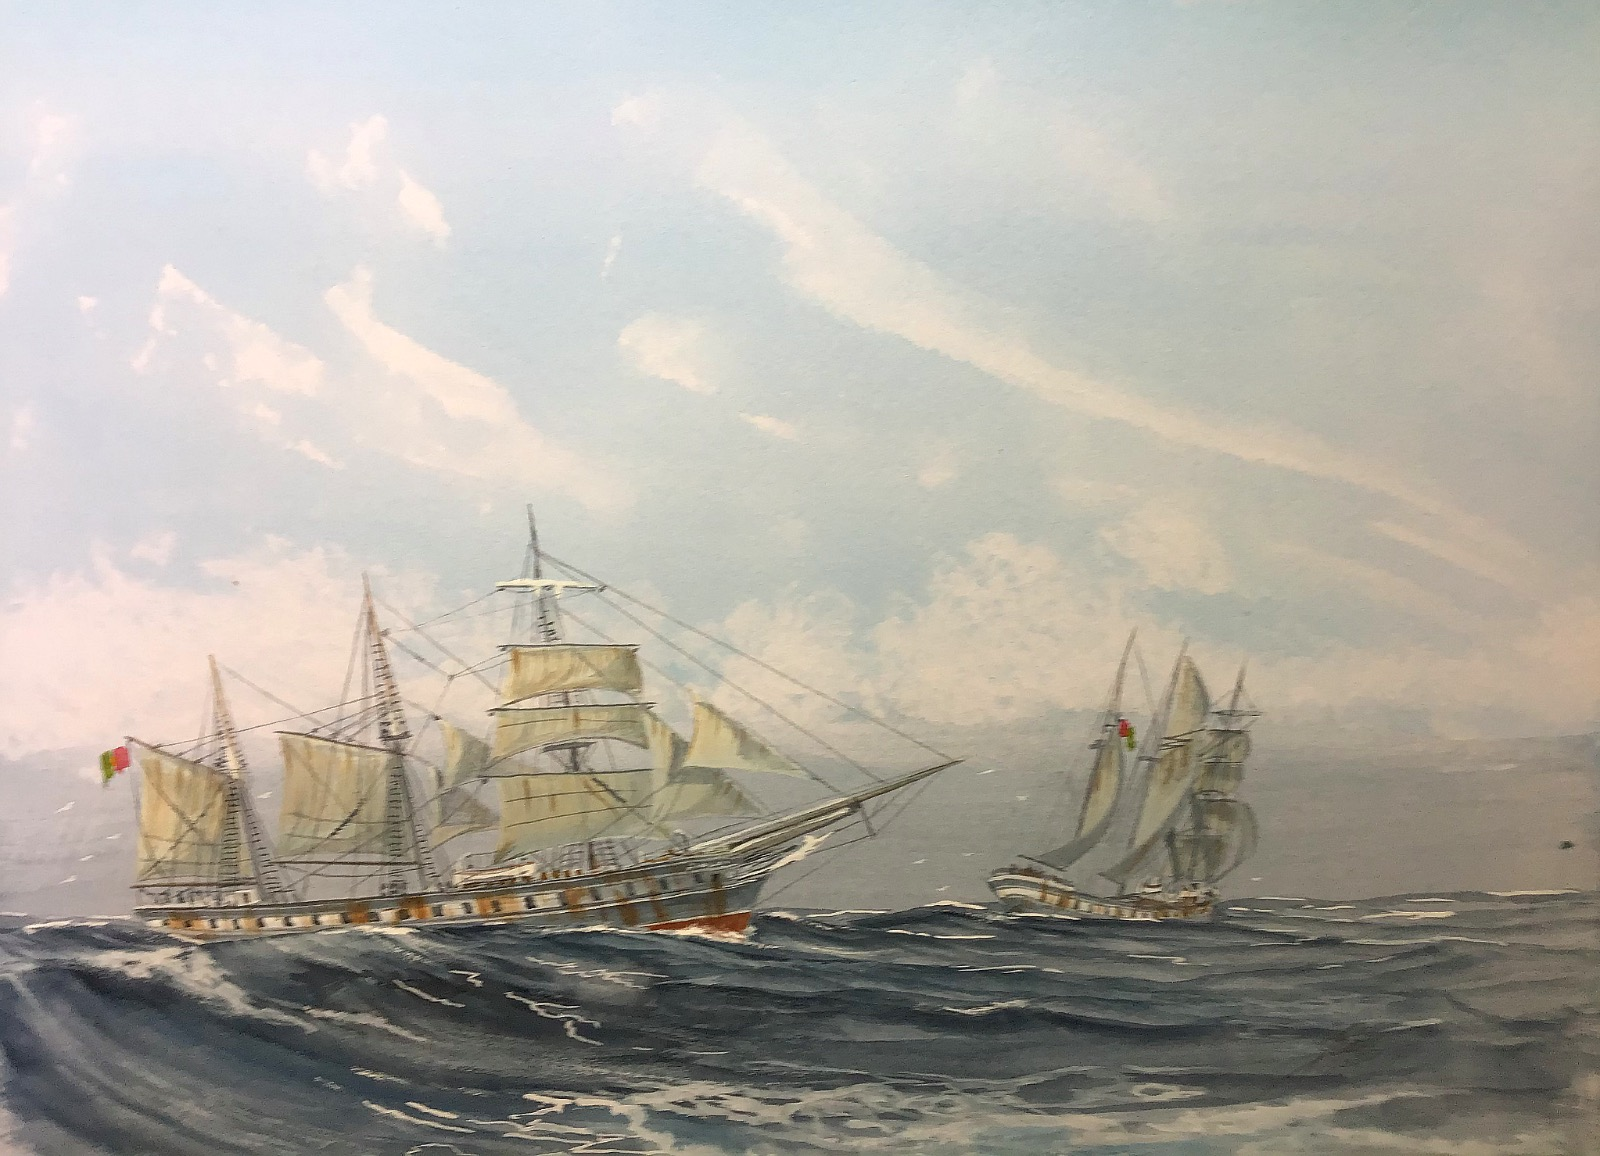 Ferreira. Cutty Sark as a Barquentine in Portuguese service 'from Thoroughbred to Carthorse'